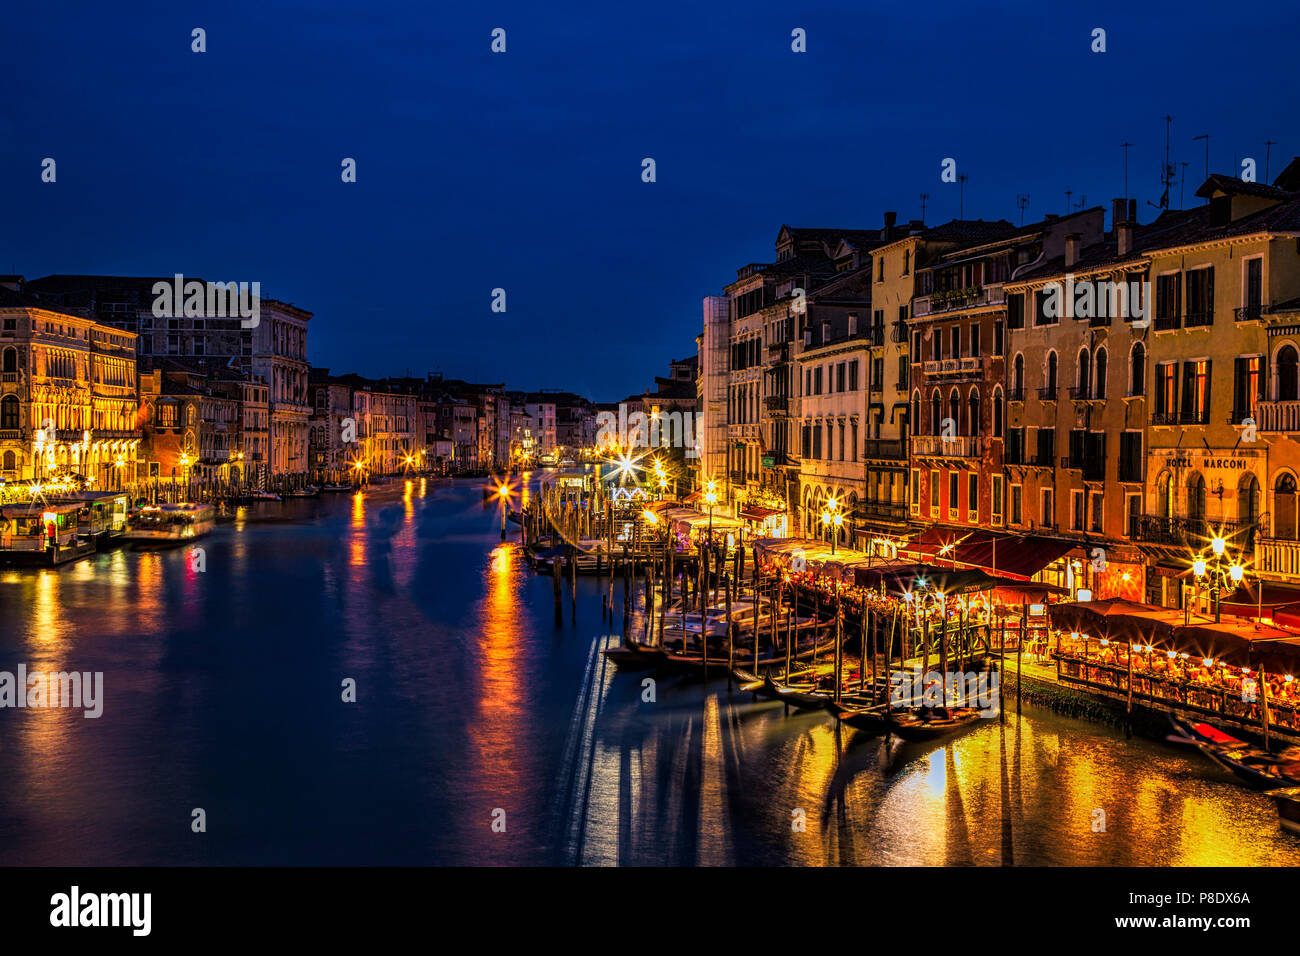 View down the Grand Canal at twilight seen from the Rialto Bridge in Venice, Italy - Stock Image